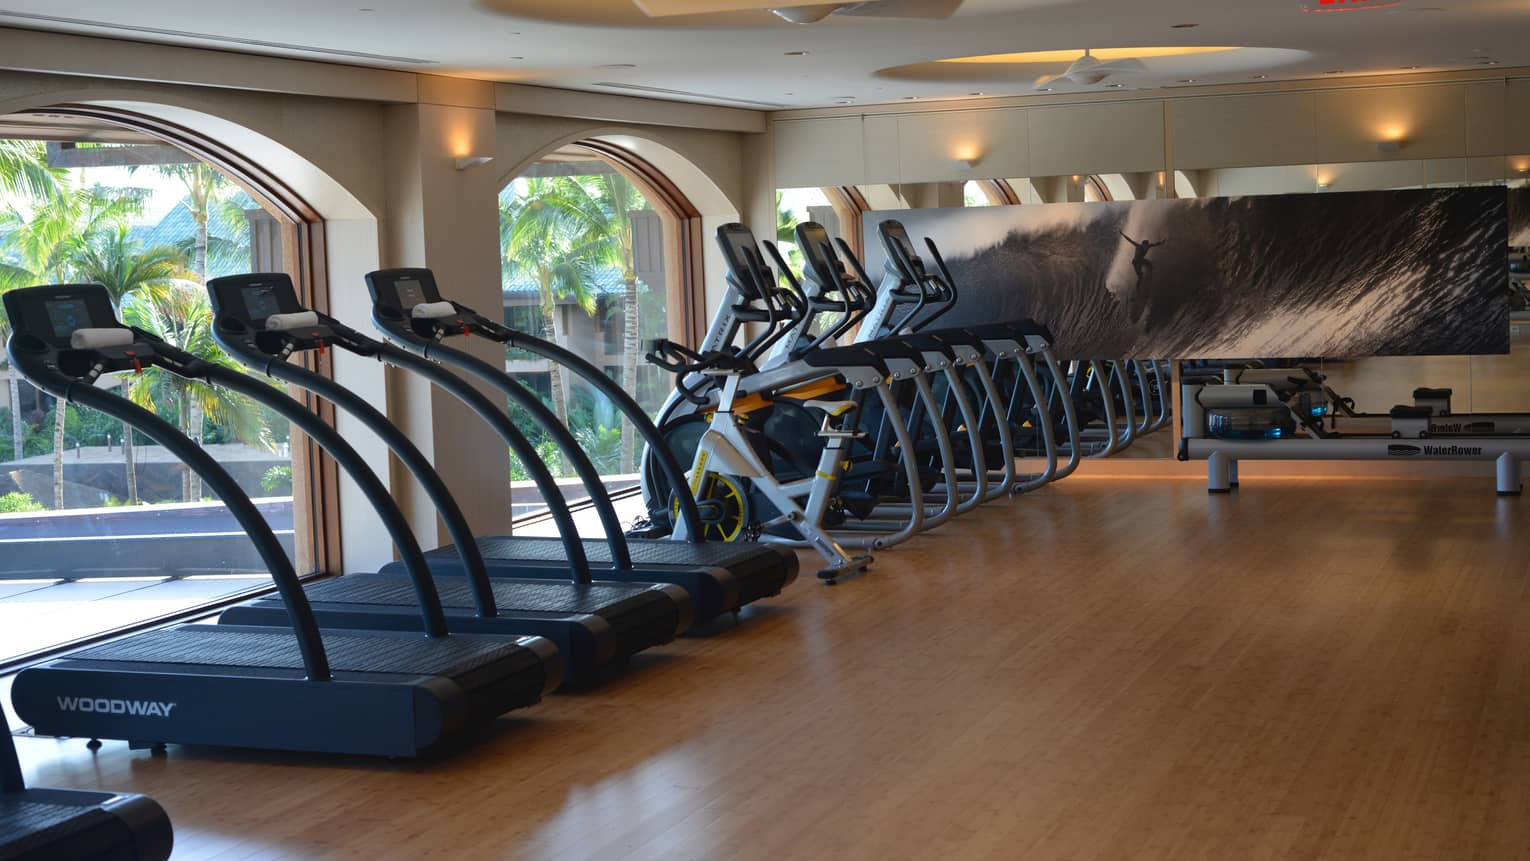 Fitness Centre treadmills, cardio bikes lined up against arched windows, large print with surfer on wave